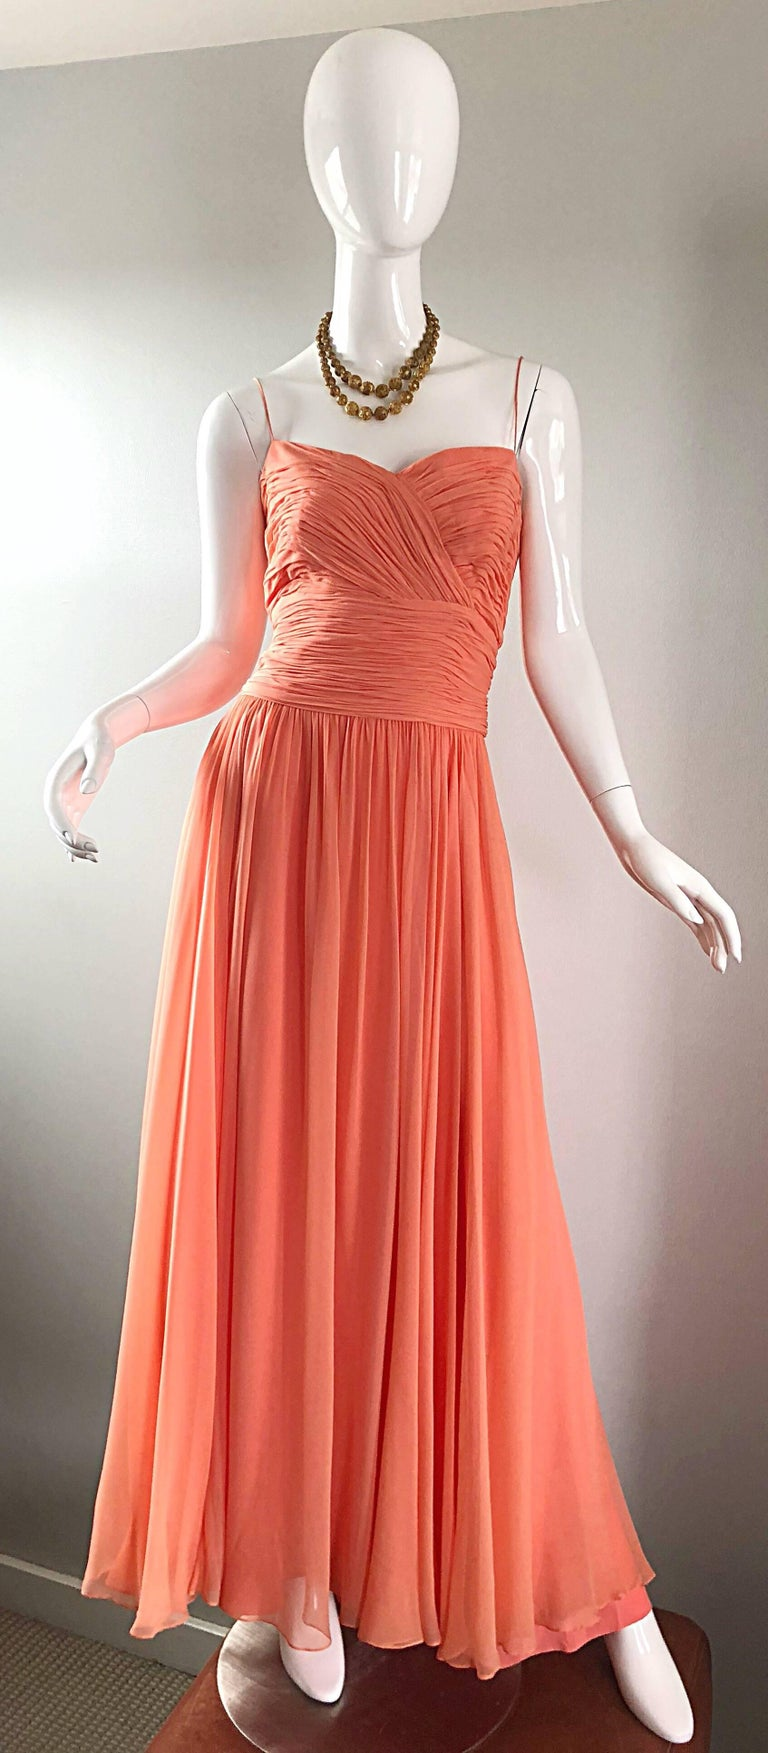 Gorgeous 1950s Saks 5th Ave. Salmon / Coral Pink Silk Chiffon Vintage 50s Gown For Sale 4